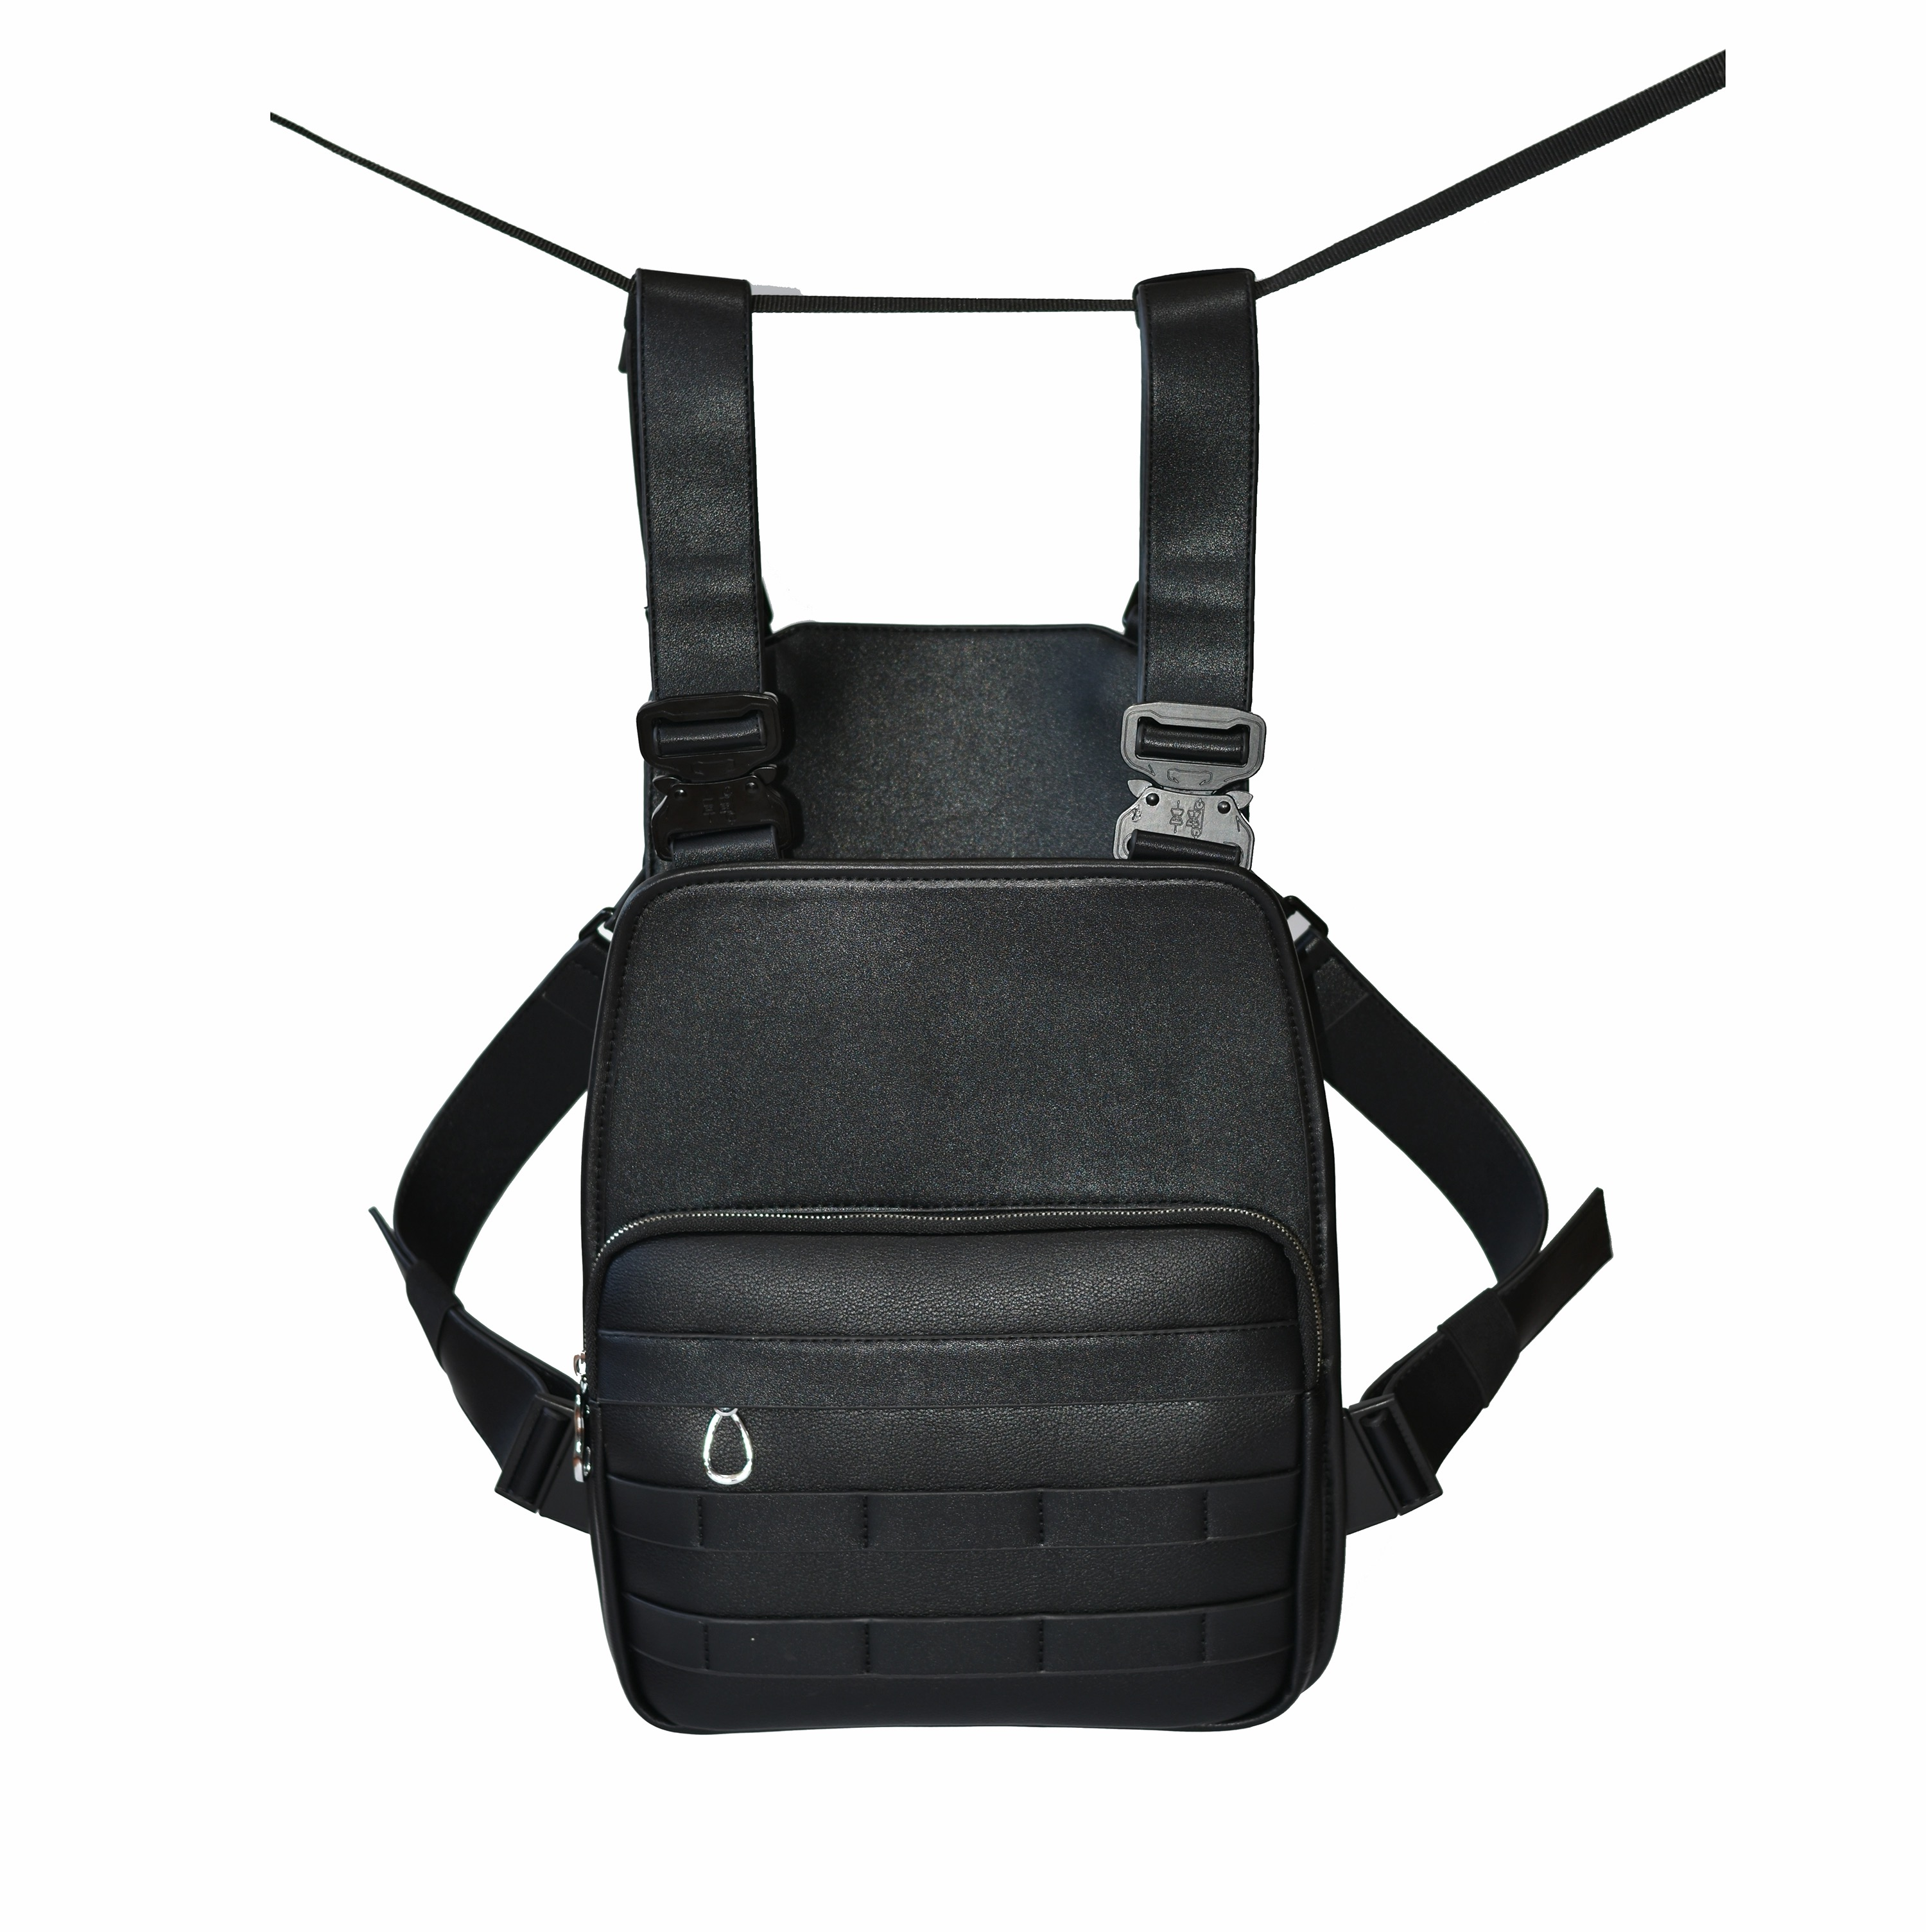 2019 hot selling in Amazon 2019 New Design Tactical Chest Rig Bag Military Vest Pouch EDC Combat Bag with Suspenders